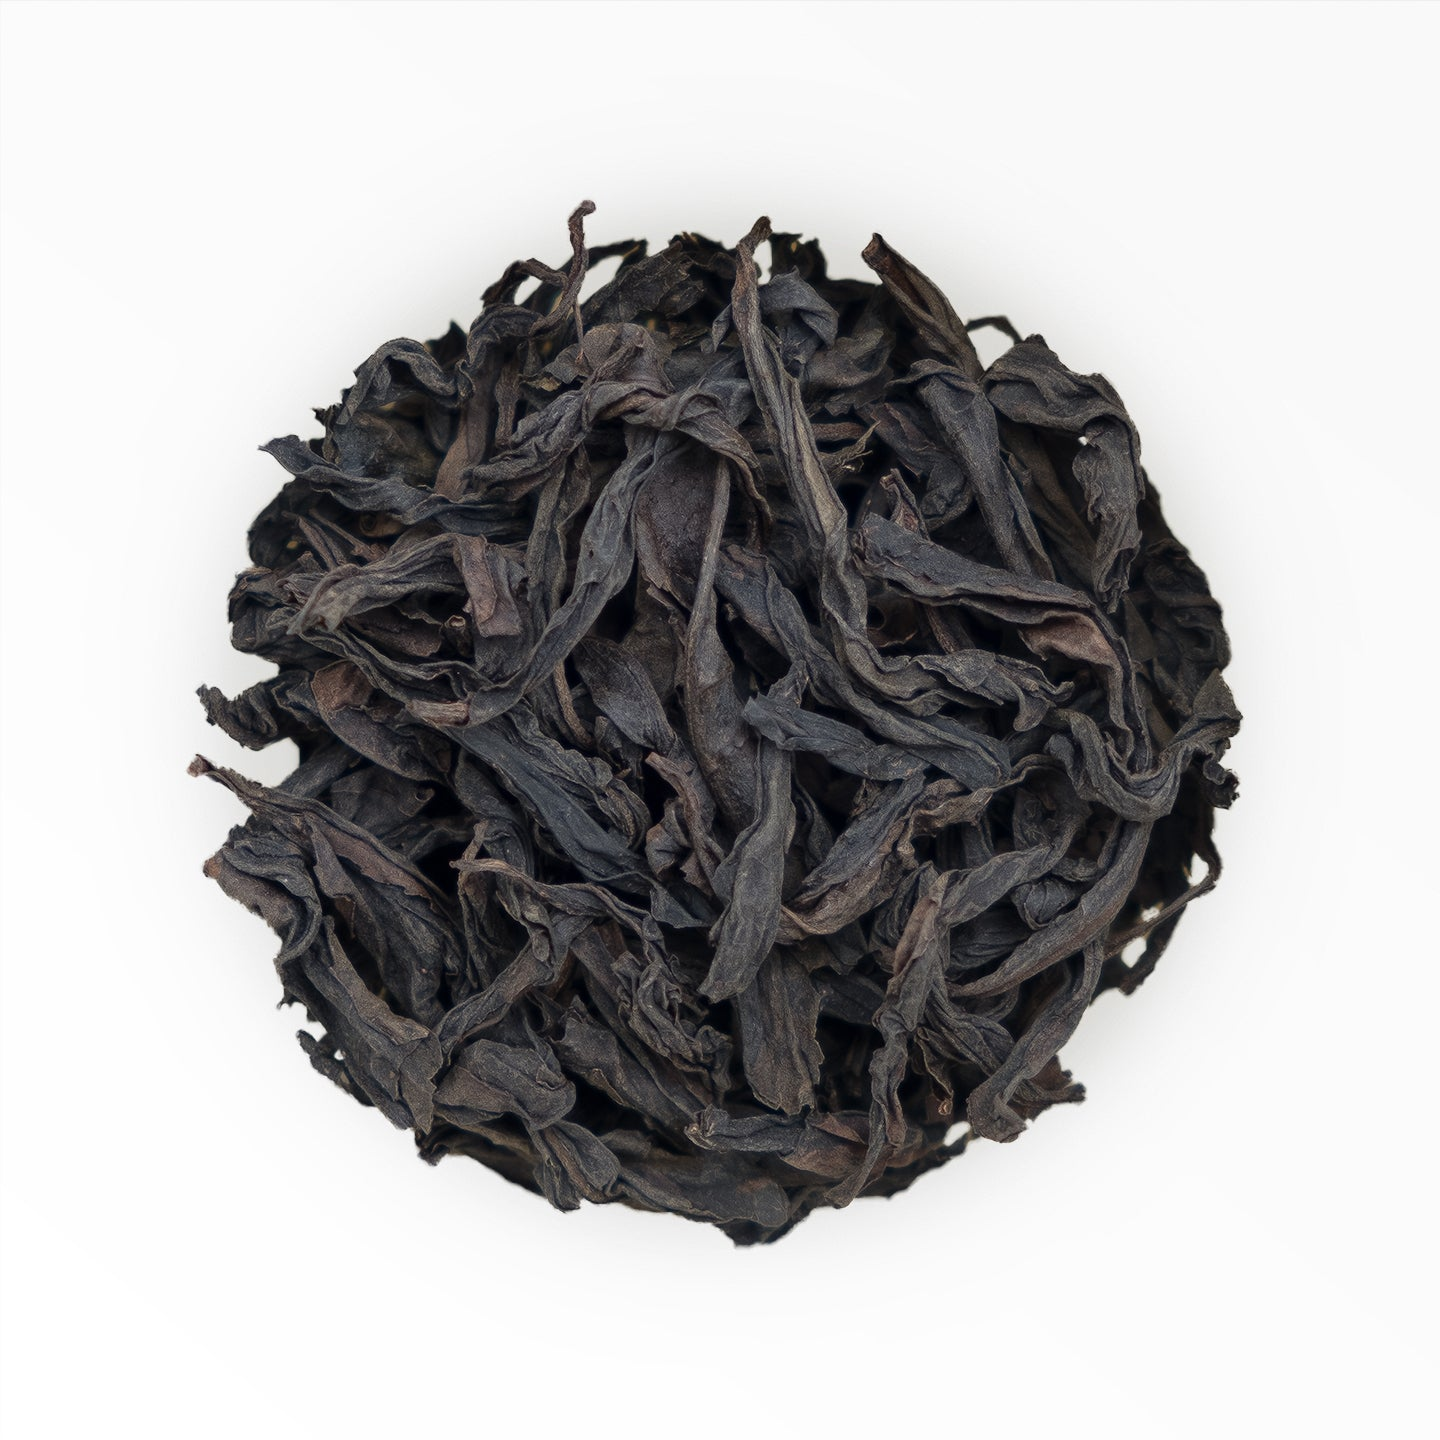 Da Hong Pao 2019 - Oolong Tea